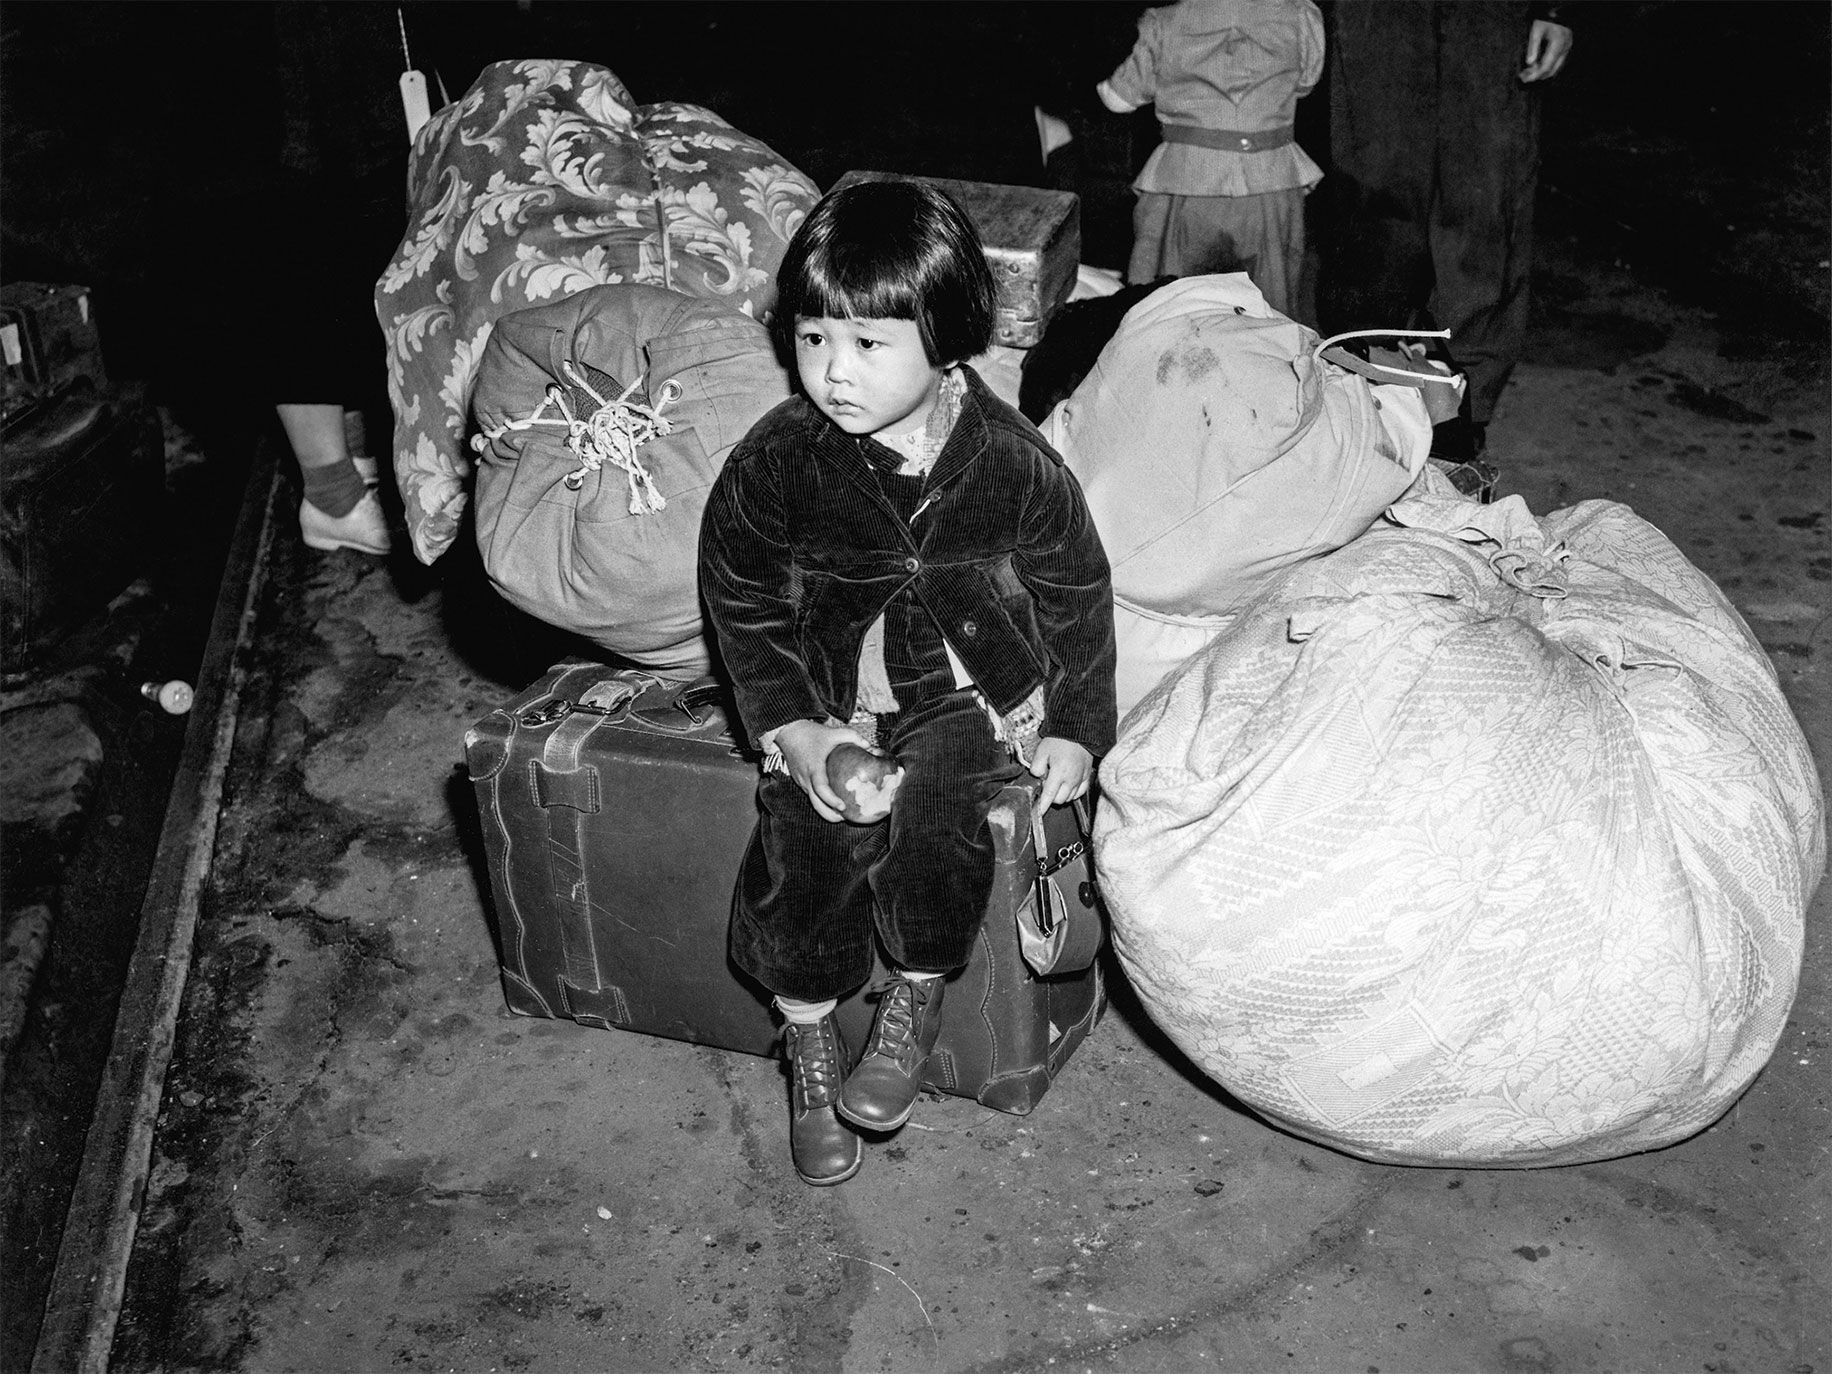 "Holding an apple, two-year-old Yukiko Okinaga Hayakawa sits with her luggage at Union Station, in Los Angeles, in 1942 after she and her single mother are forced to leave their home in Little Tokyo. They would spend three years at the Manzanar War Relocation Center, in California. ""She got me this red corduroy outfit, and that's what I am wearing,"" Hayakawa said. ""And she got me those lovely shoes. I said, 'You bought those for me for the evacuation?' She said, 'Yes, because you didn't have anything to wear.' And I thought, 'How many people did that?' "" Hayakawa learned English after the war when she and her mother relocated to Cleveland, where her mom supported the family as a seamstress. ""When I went to school in Cleveland, people yelled at me and called me names,"" she said. "" 'There goes that dirty Jap.' And I didn't know what that meant. My mom would say, 'Well, that's the way it goes. Shikata ga nai.' """